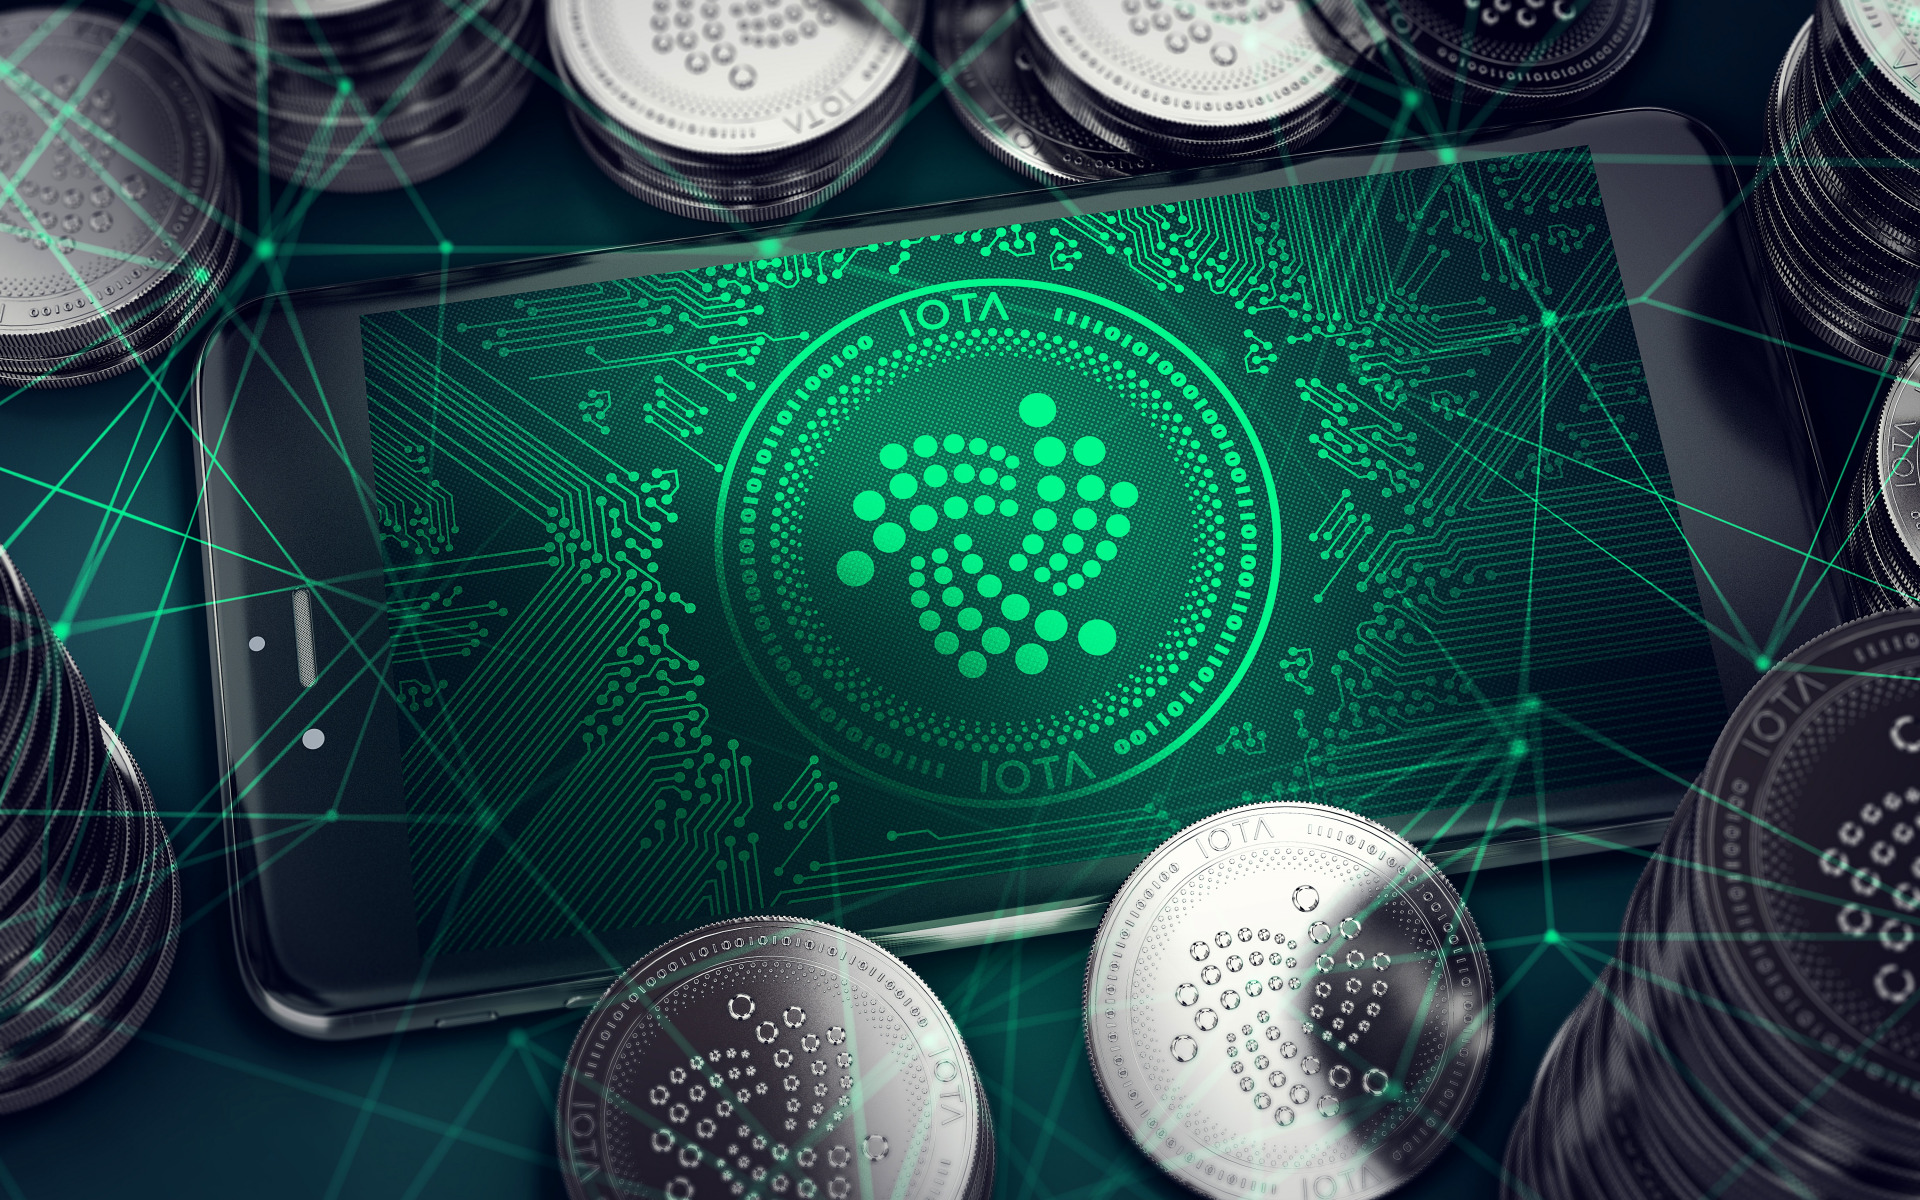 Iota releases Smart Contracts Protocol alpha ahead of Coordicide rollout